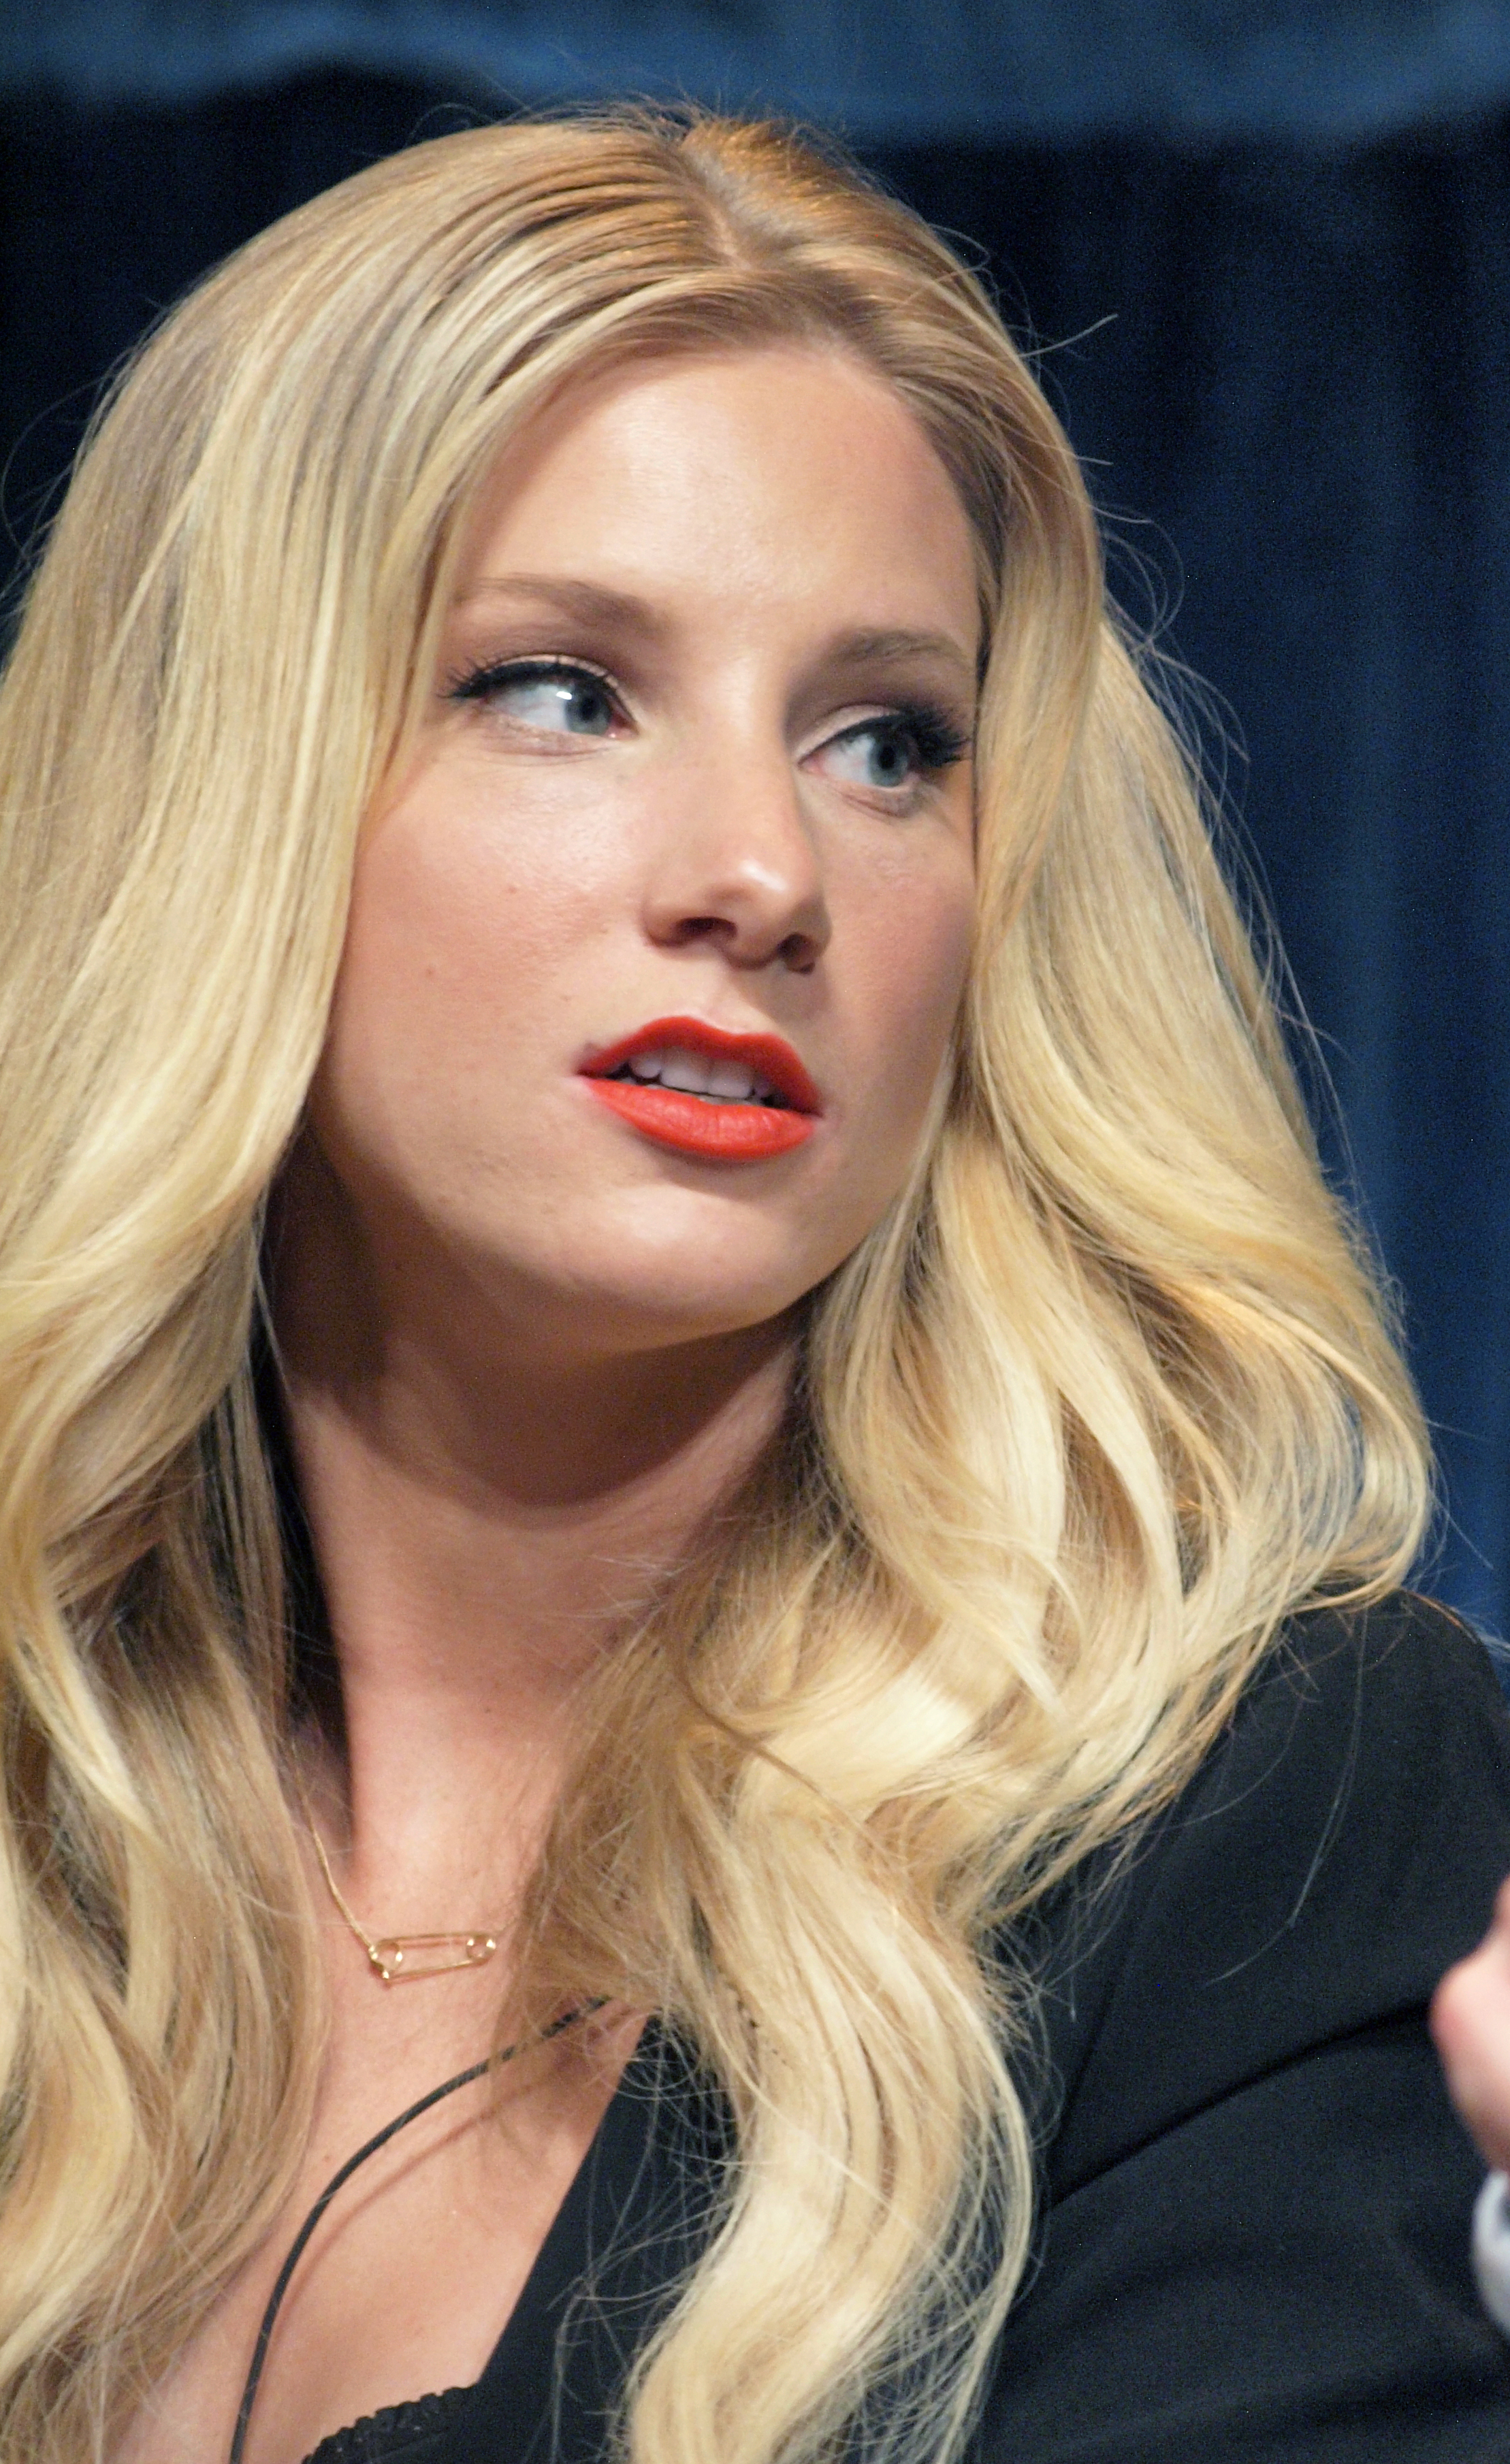 http://upload.wikimedia.org/wikipedia/commons/8/83/Heather_Morris_PaleyFest_11a_crop.jpg